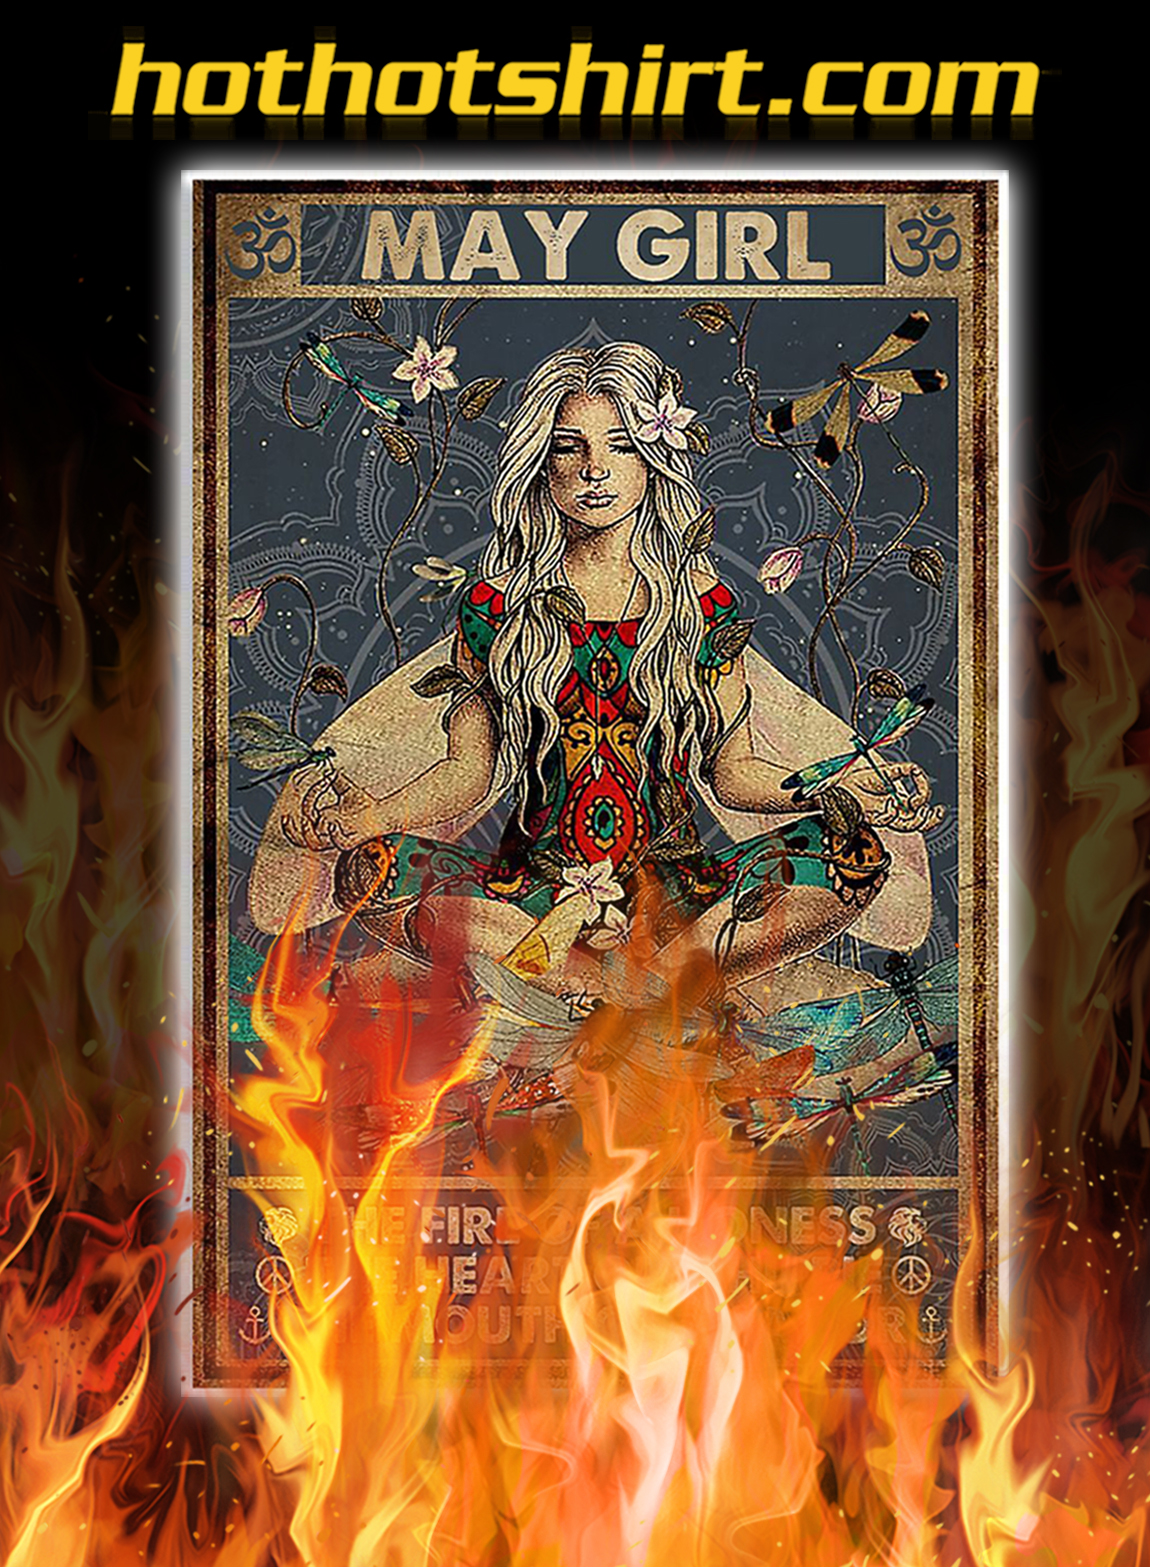 Yoga may girl the fire of a lioness poster- A2